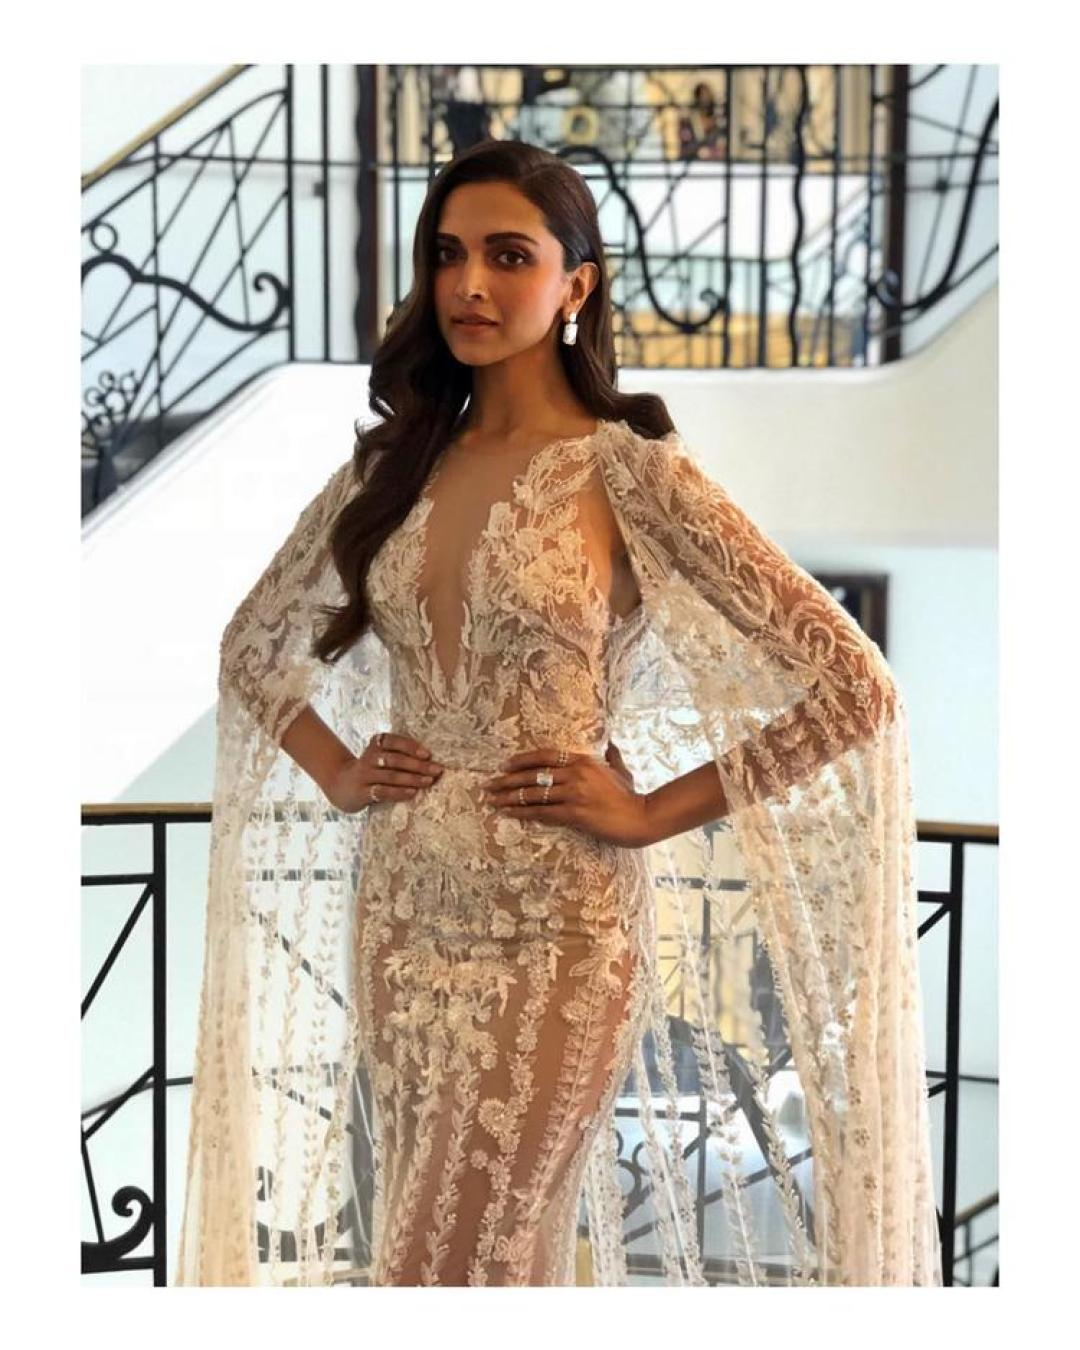 Even the just married Sonam Kapoor will be completing 8 years at Cannes and will attend the festival on May 14 and May 15.